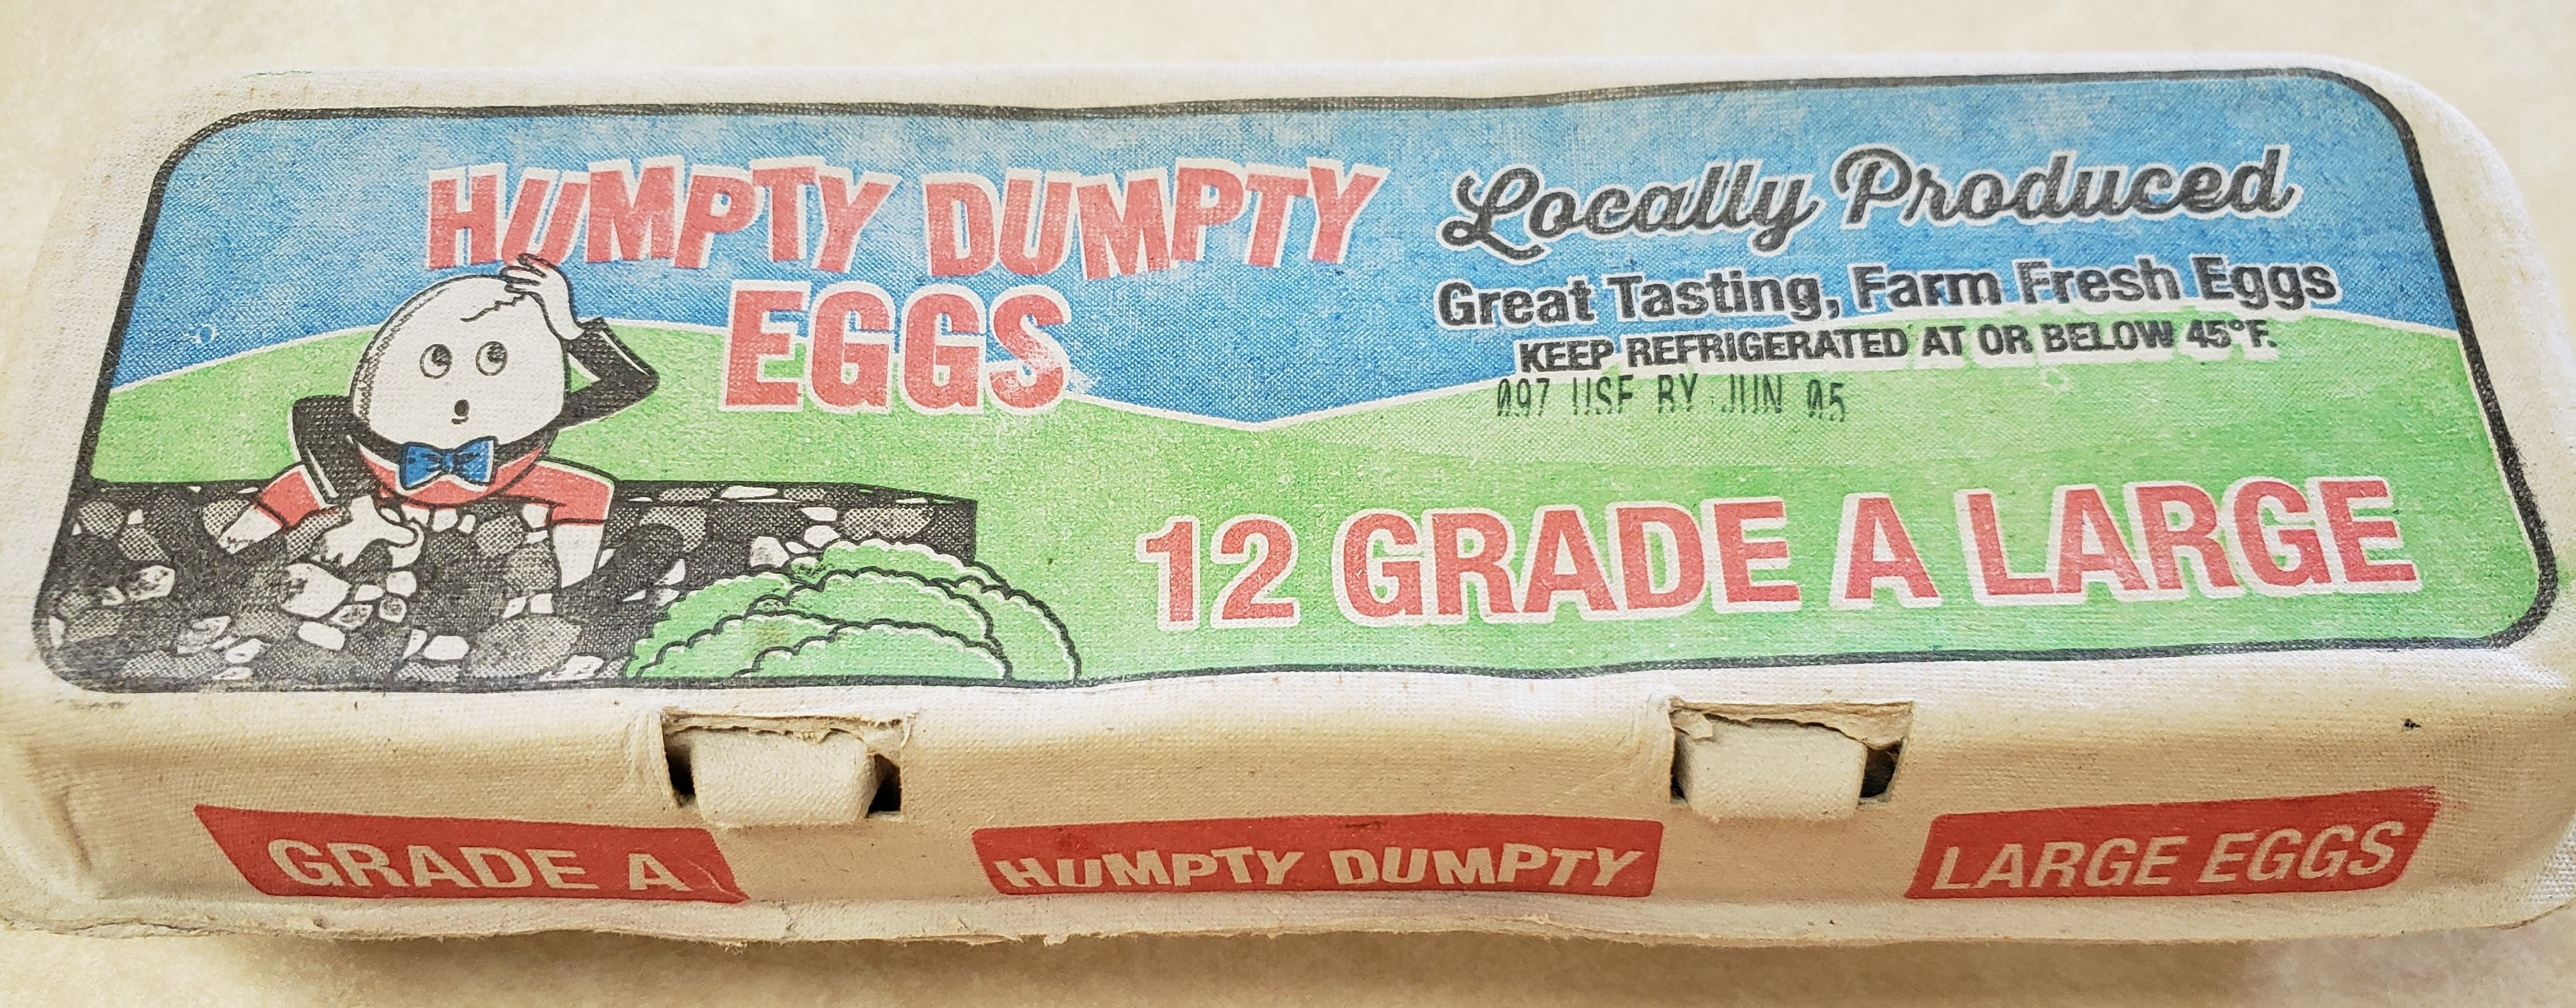 Humpty Dumpty Large Eggs (Pickup Item Only)